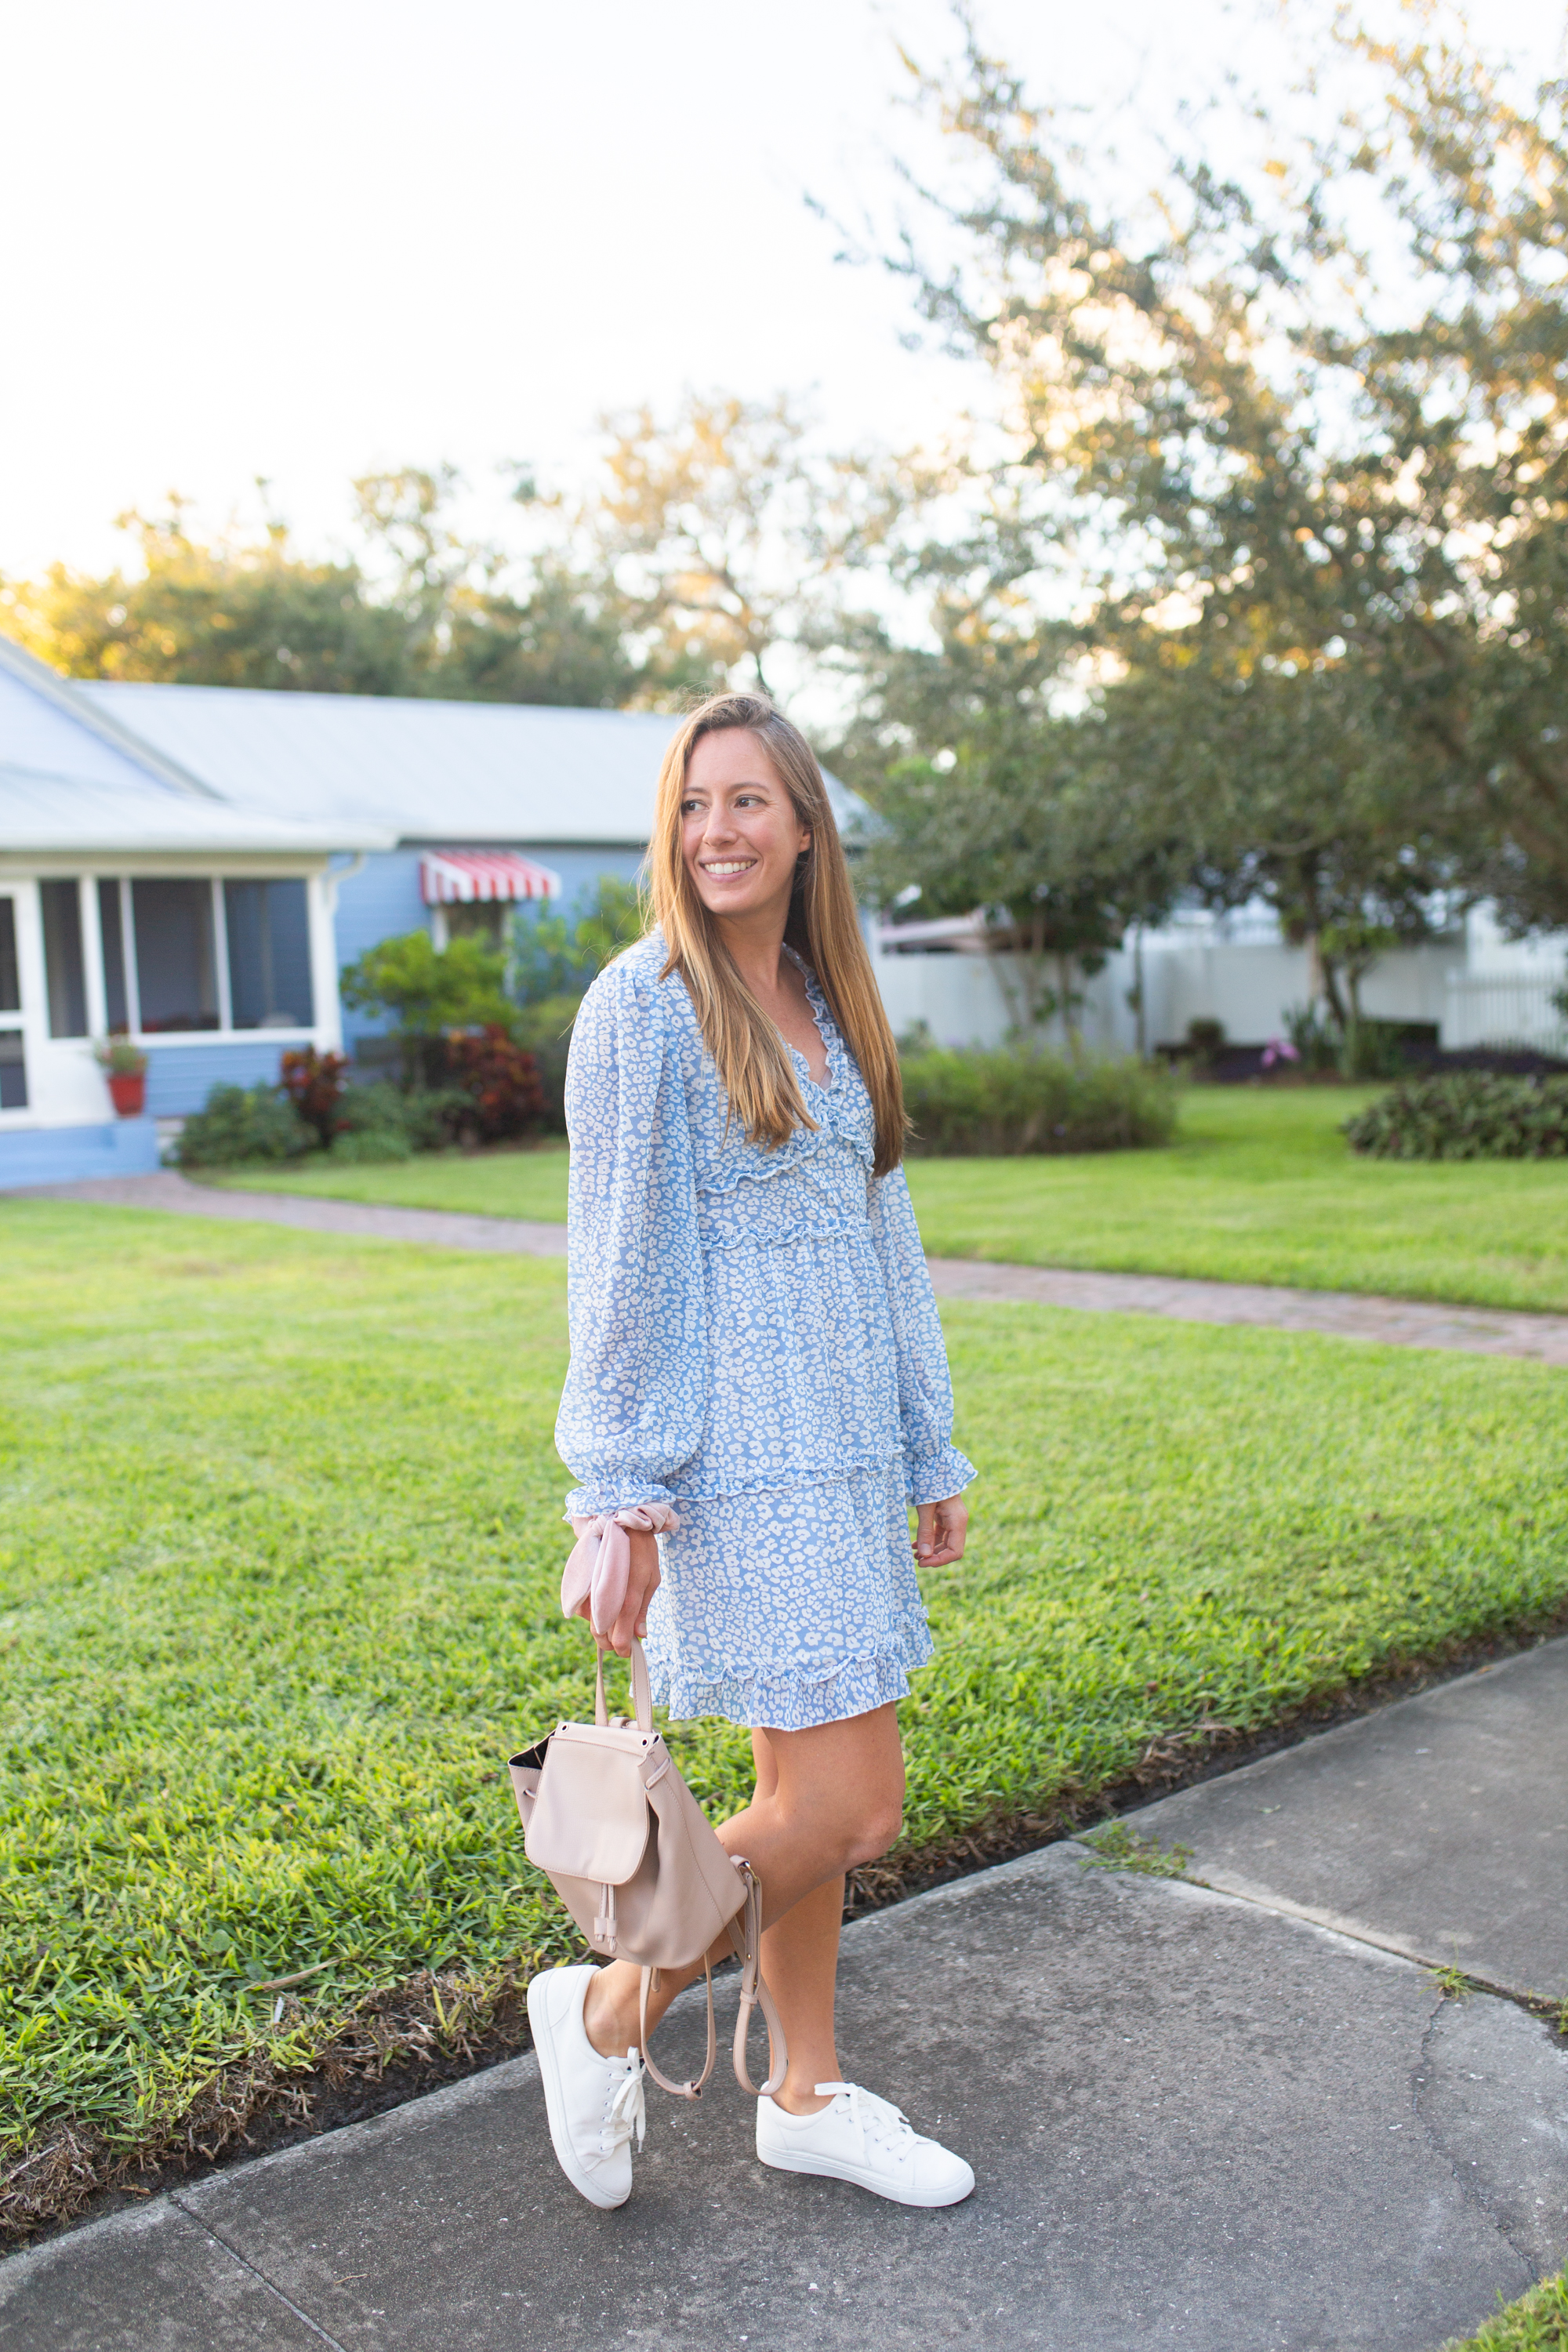 White Sneakers Outfit / Where to Buy the Best White Sneakers / White Sneakers with Dresses / How to Style White Sneakers  / White Sneakers Outfit Winter - Sunshine Style, A Florida Fashion and Lifestyle Blog by Katie